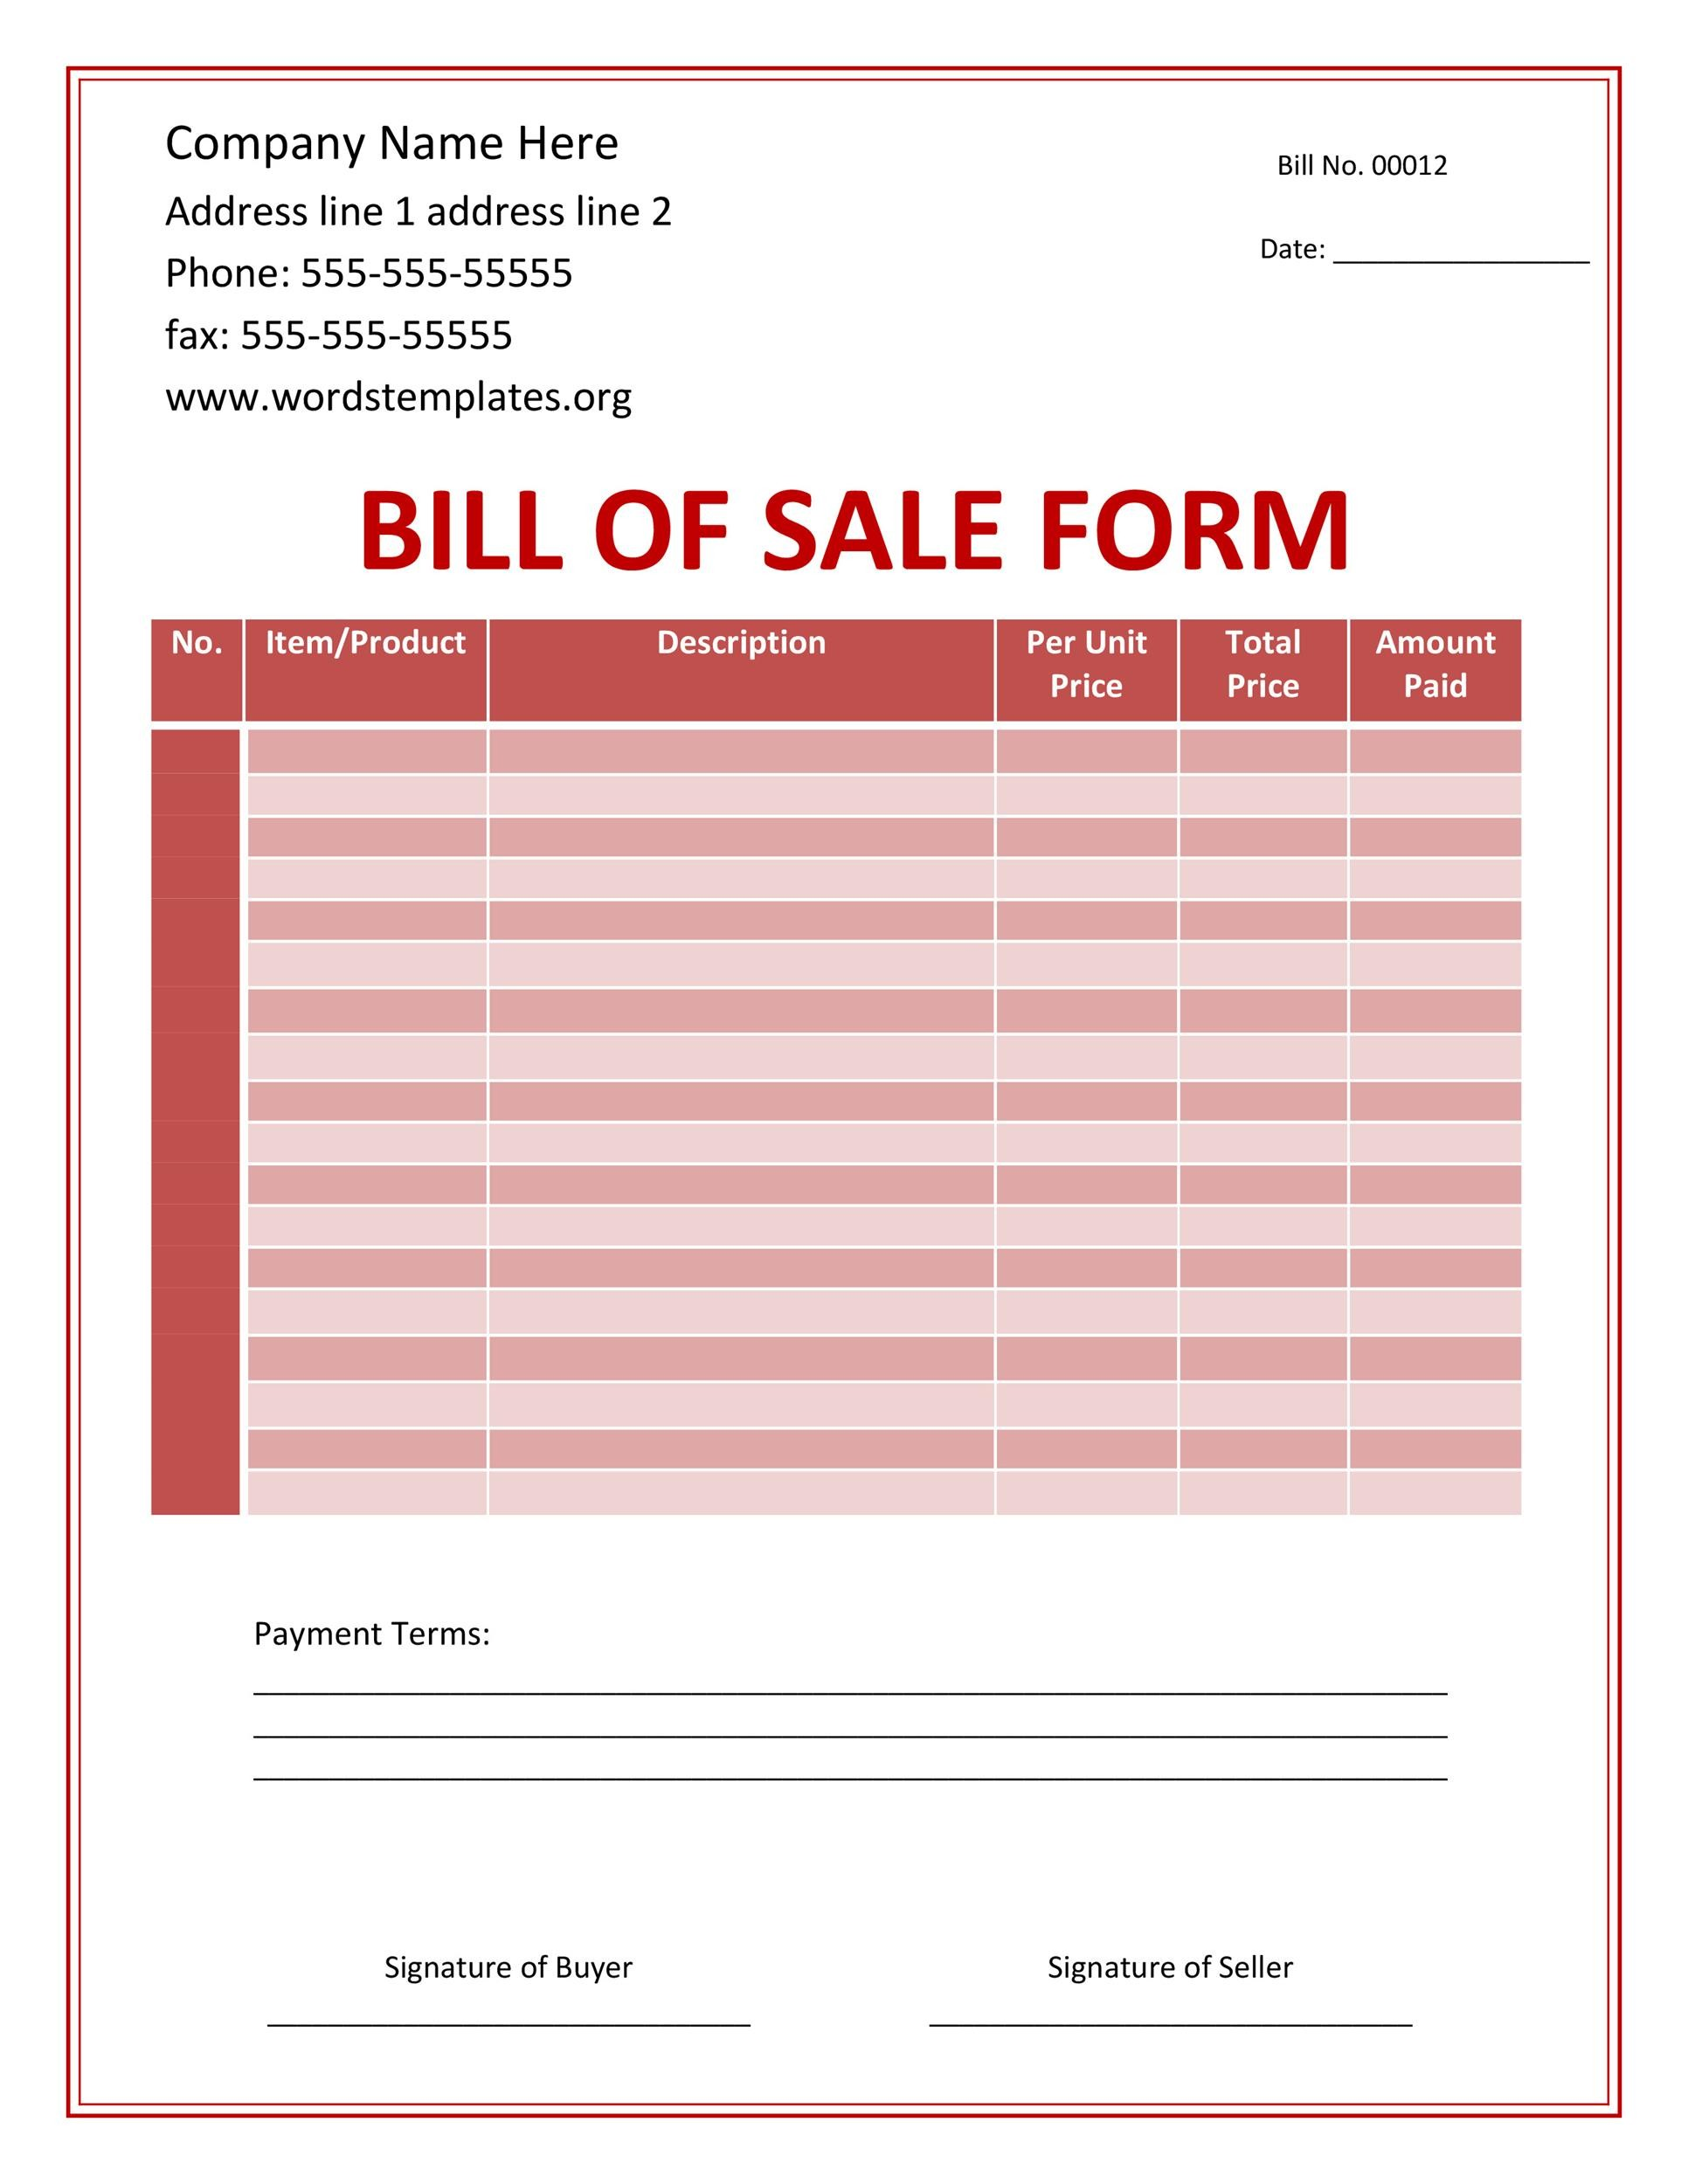 Free bill of sale template 40